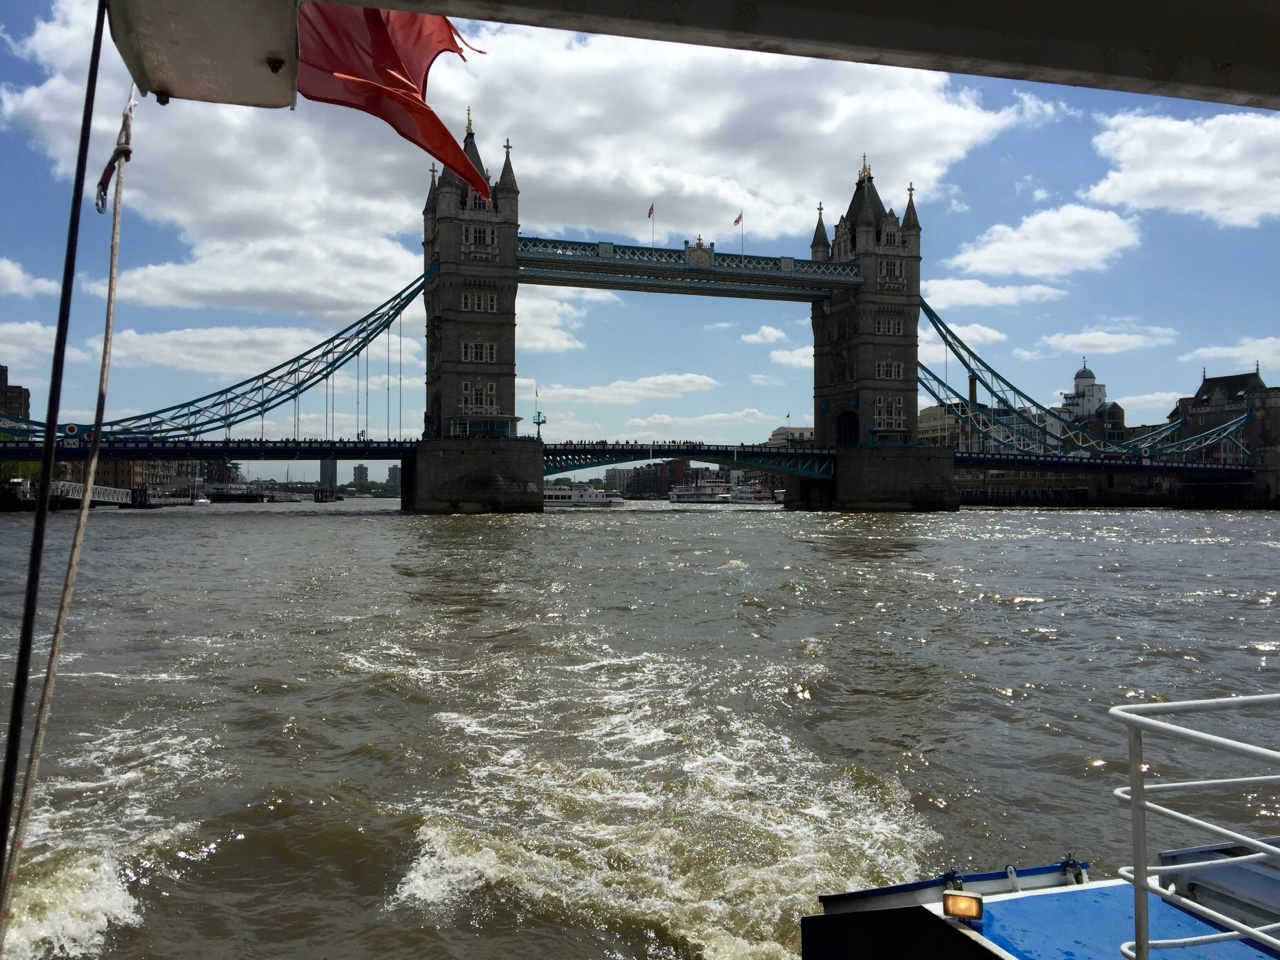 Tower Bridge from the Thames Clipper Ferry - London, United Kingdom    Shooting photographs while on a boat is a skill that I have a long way to go to master. Beautiful ride, and we got to pass directly below the bridge too!